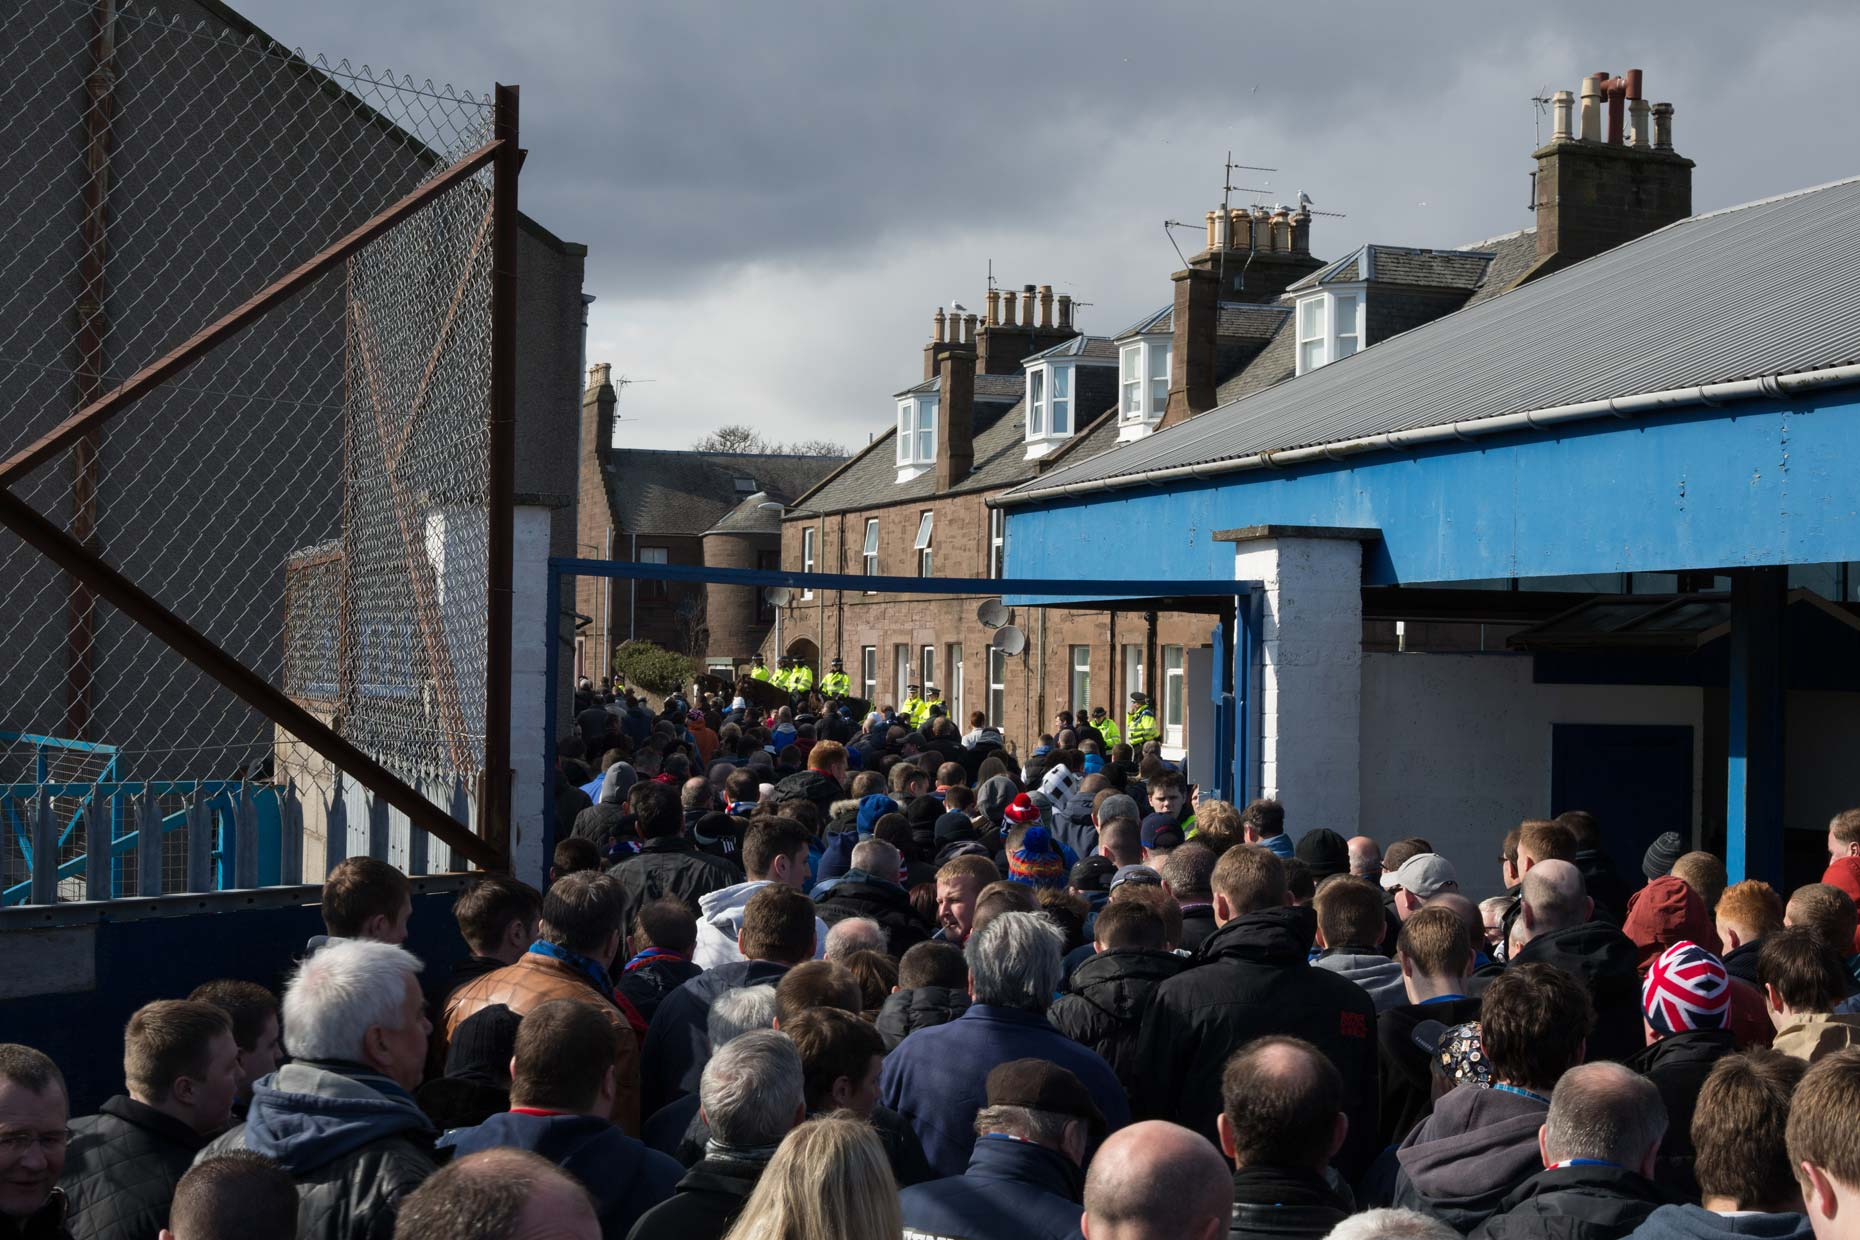 Rangers FC football fans in Montrose, Scotland, by photographer Sutton-Hibbert